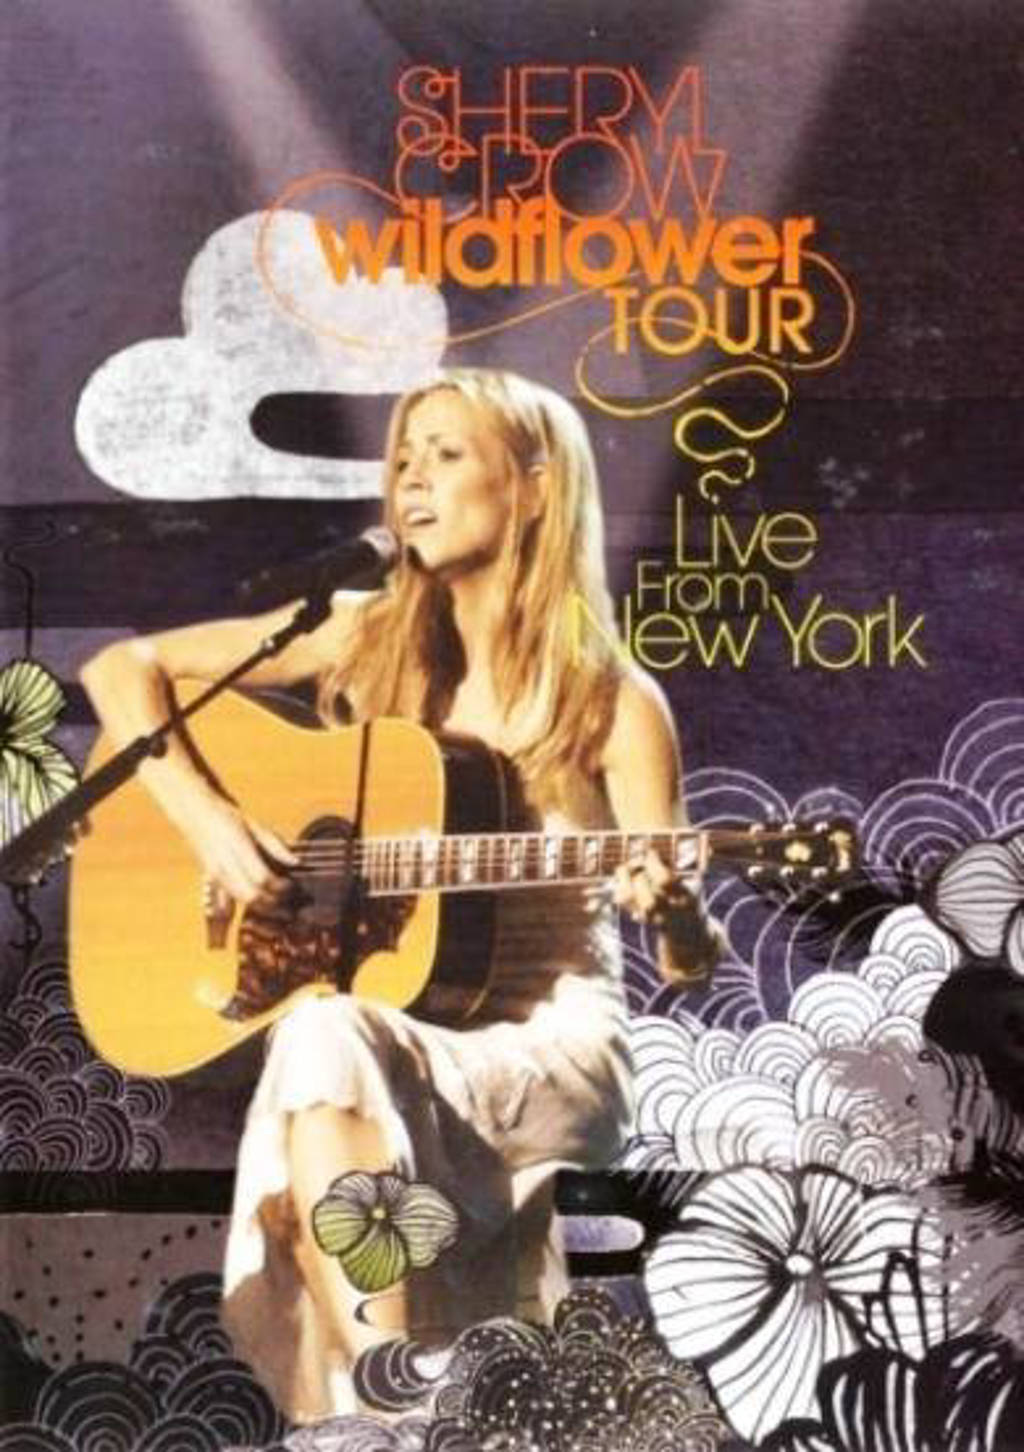 Sheryl Crow - wildflower tour live from New York (DVD)